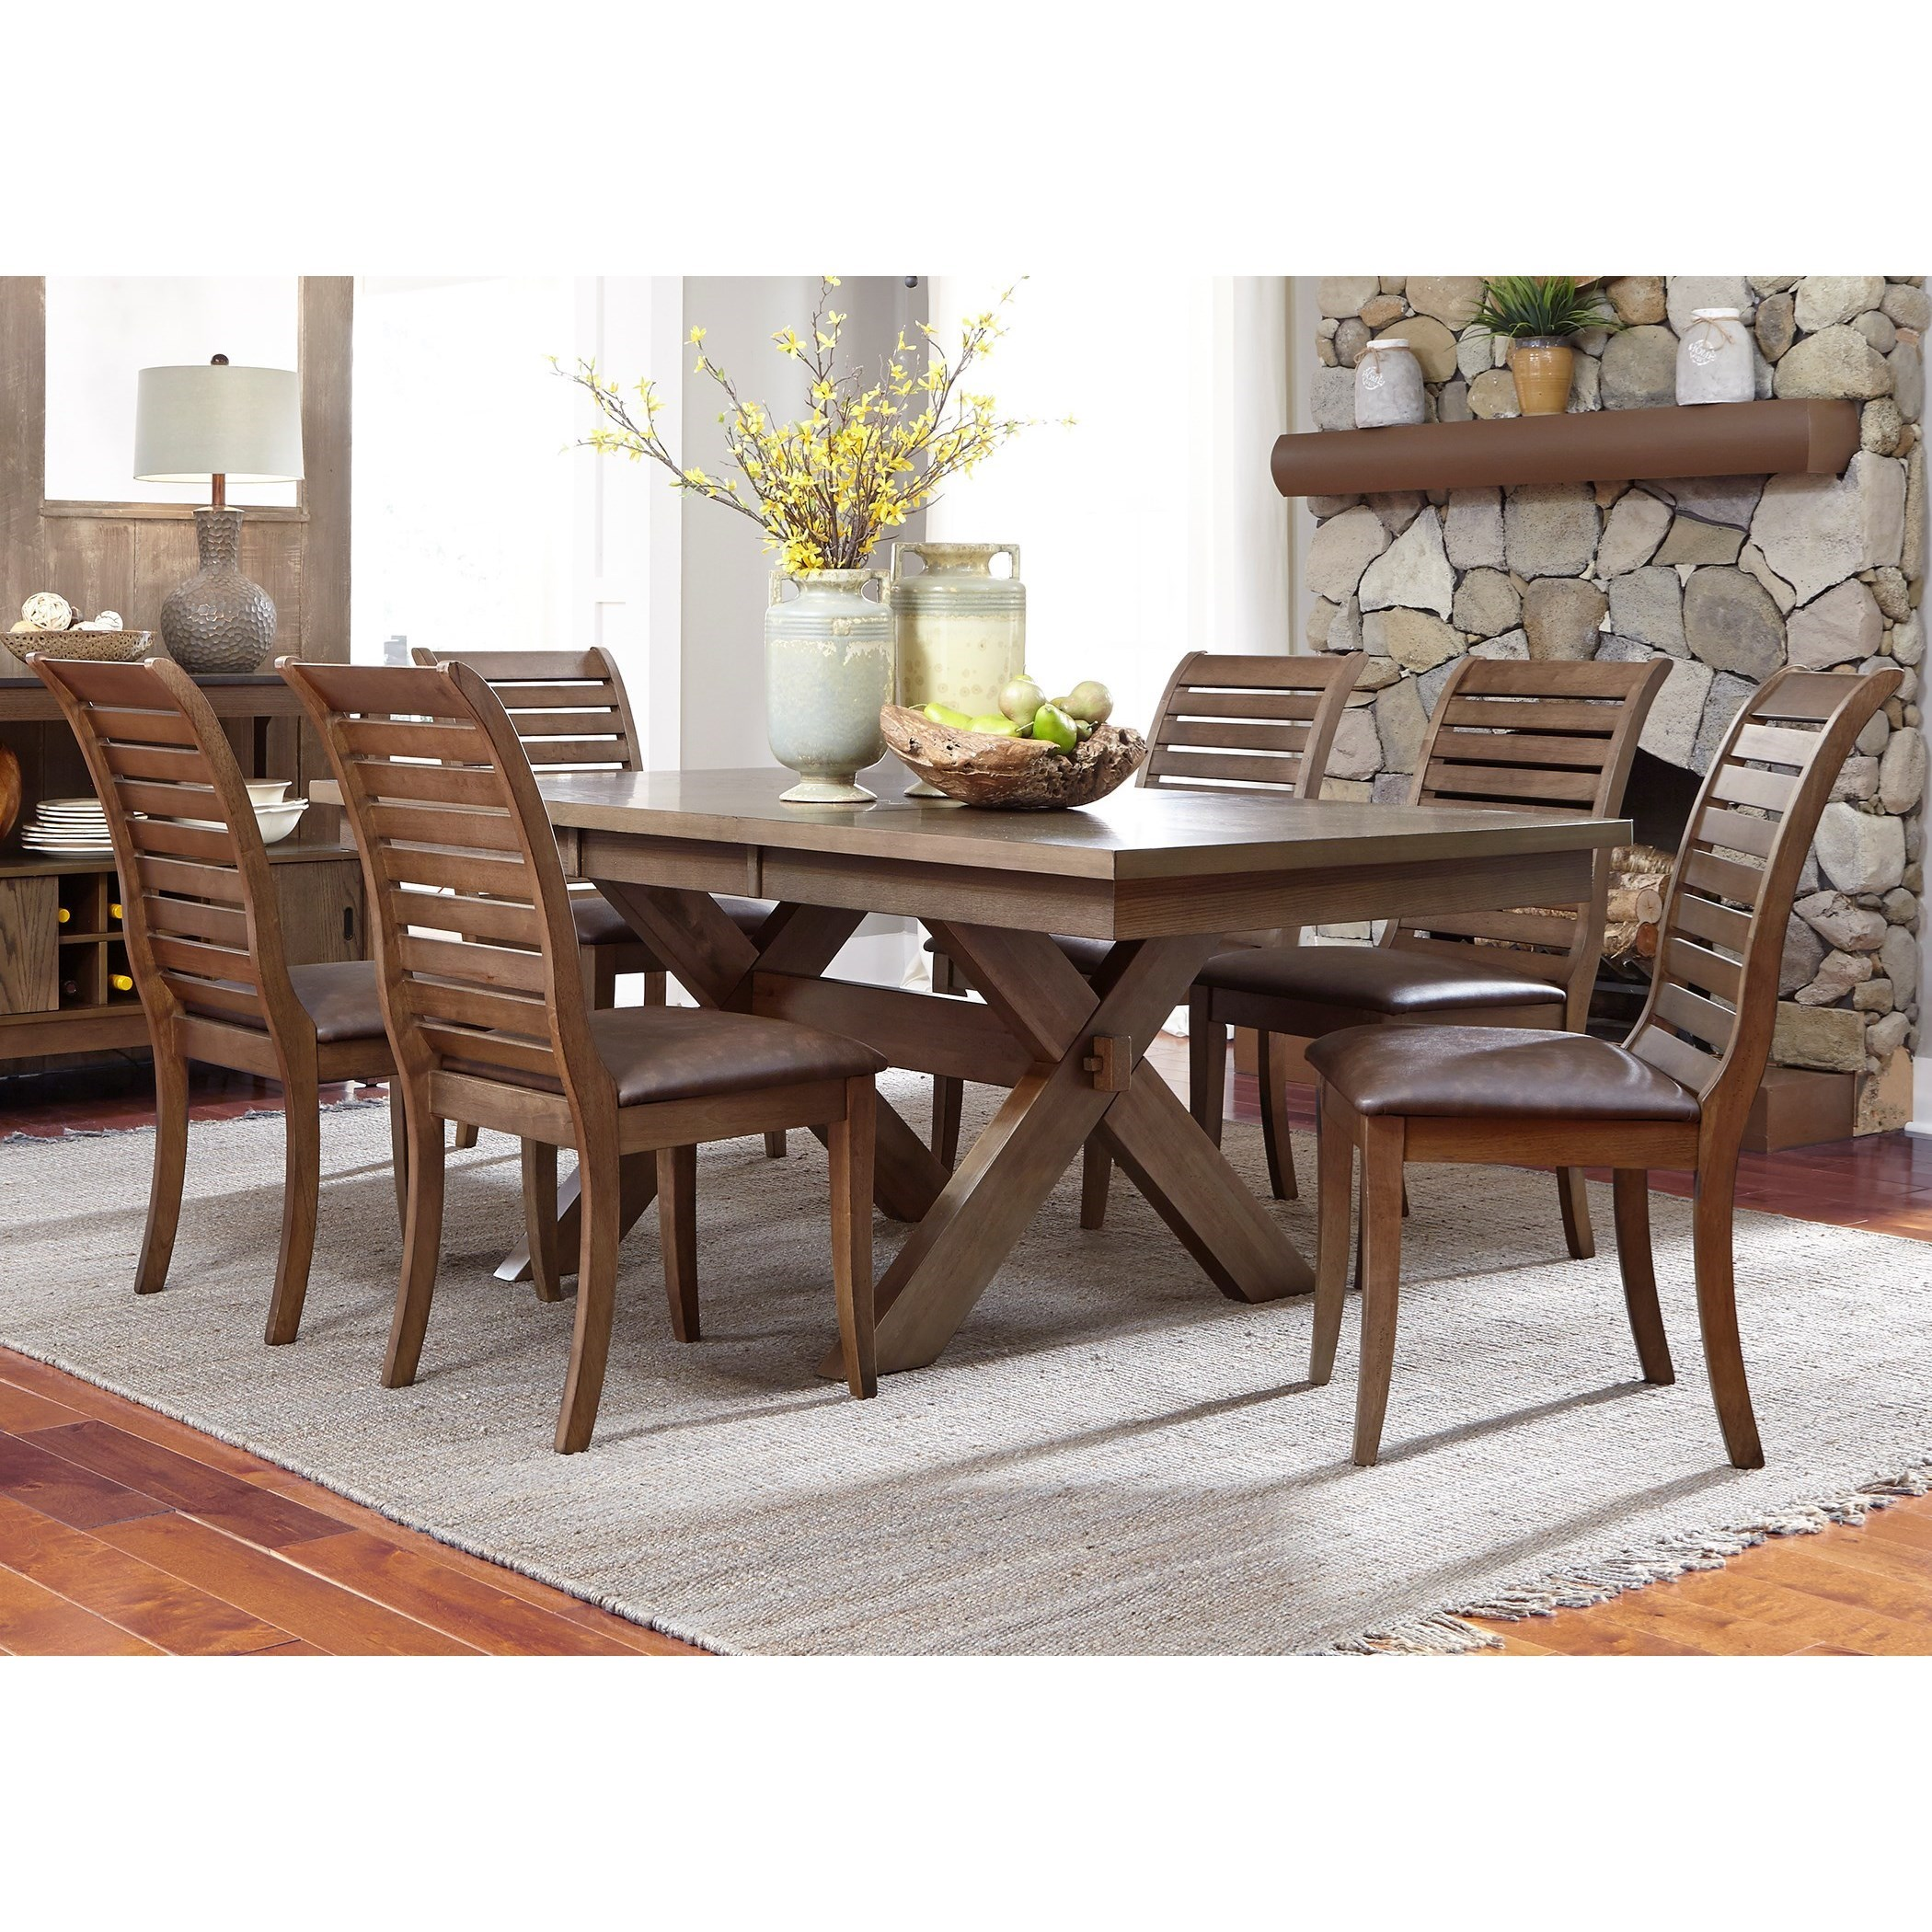 Liberty Furniture Bayside Trestle Dining Table With Butterfly Leaf